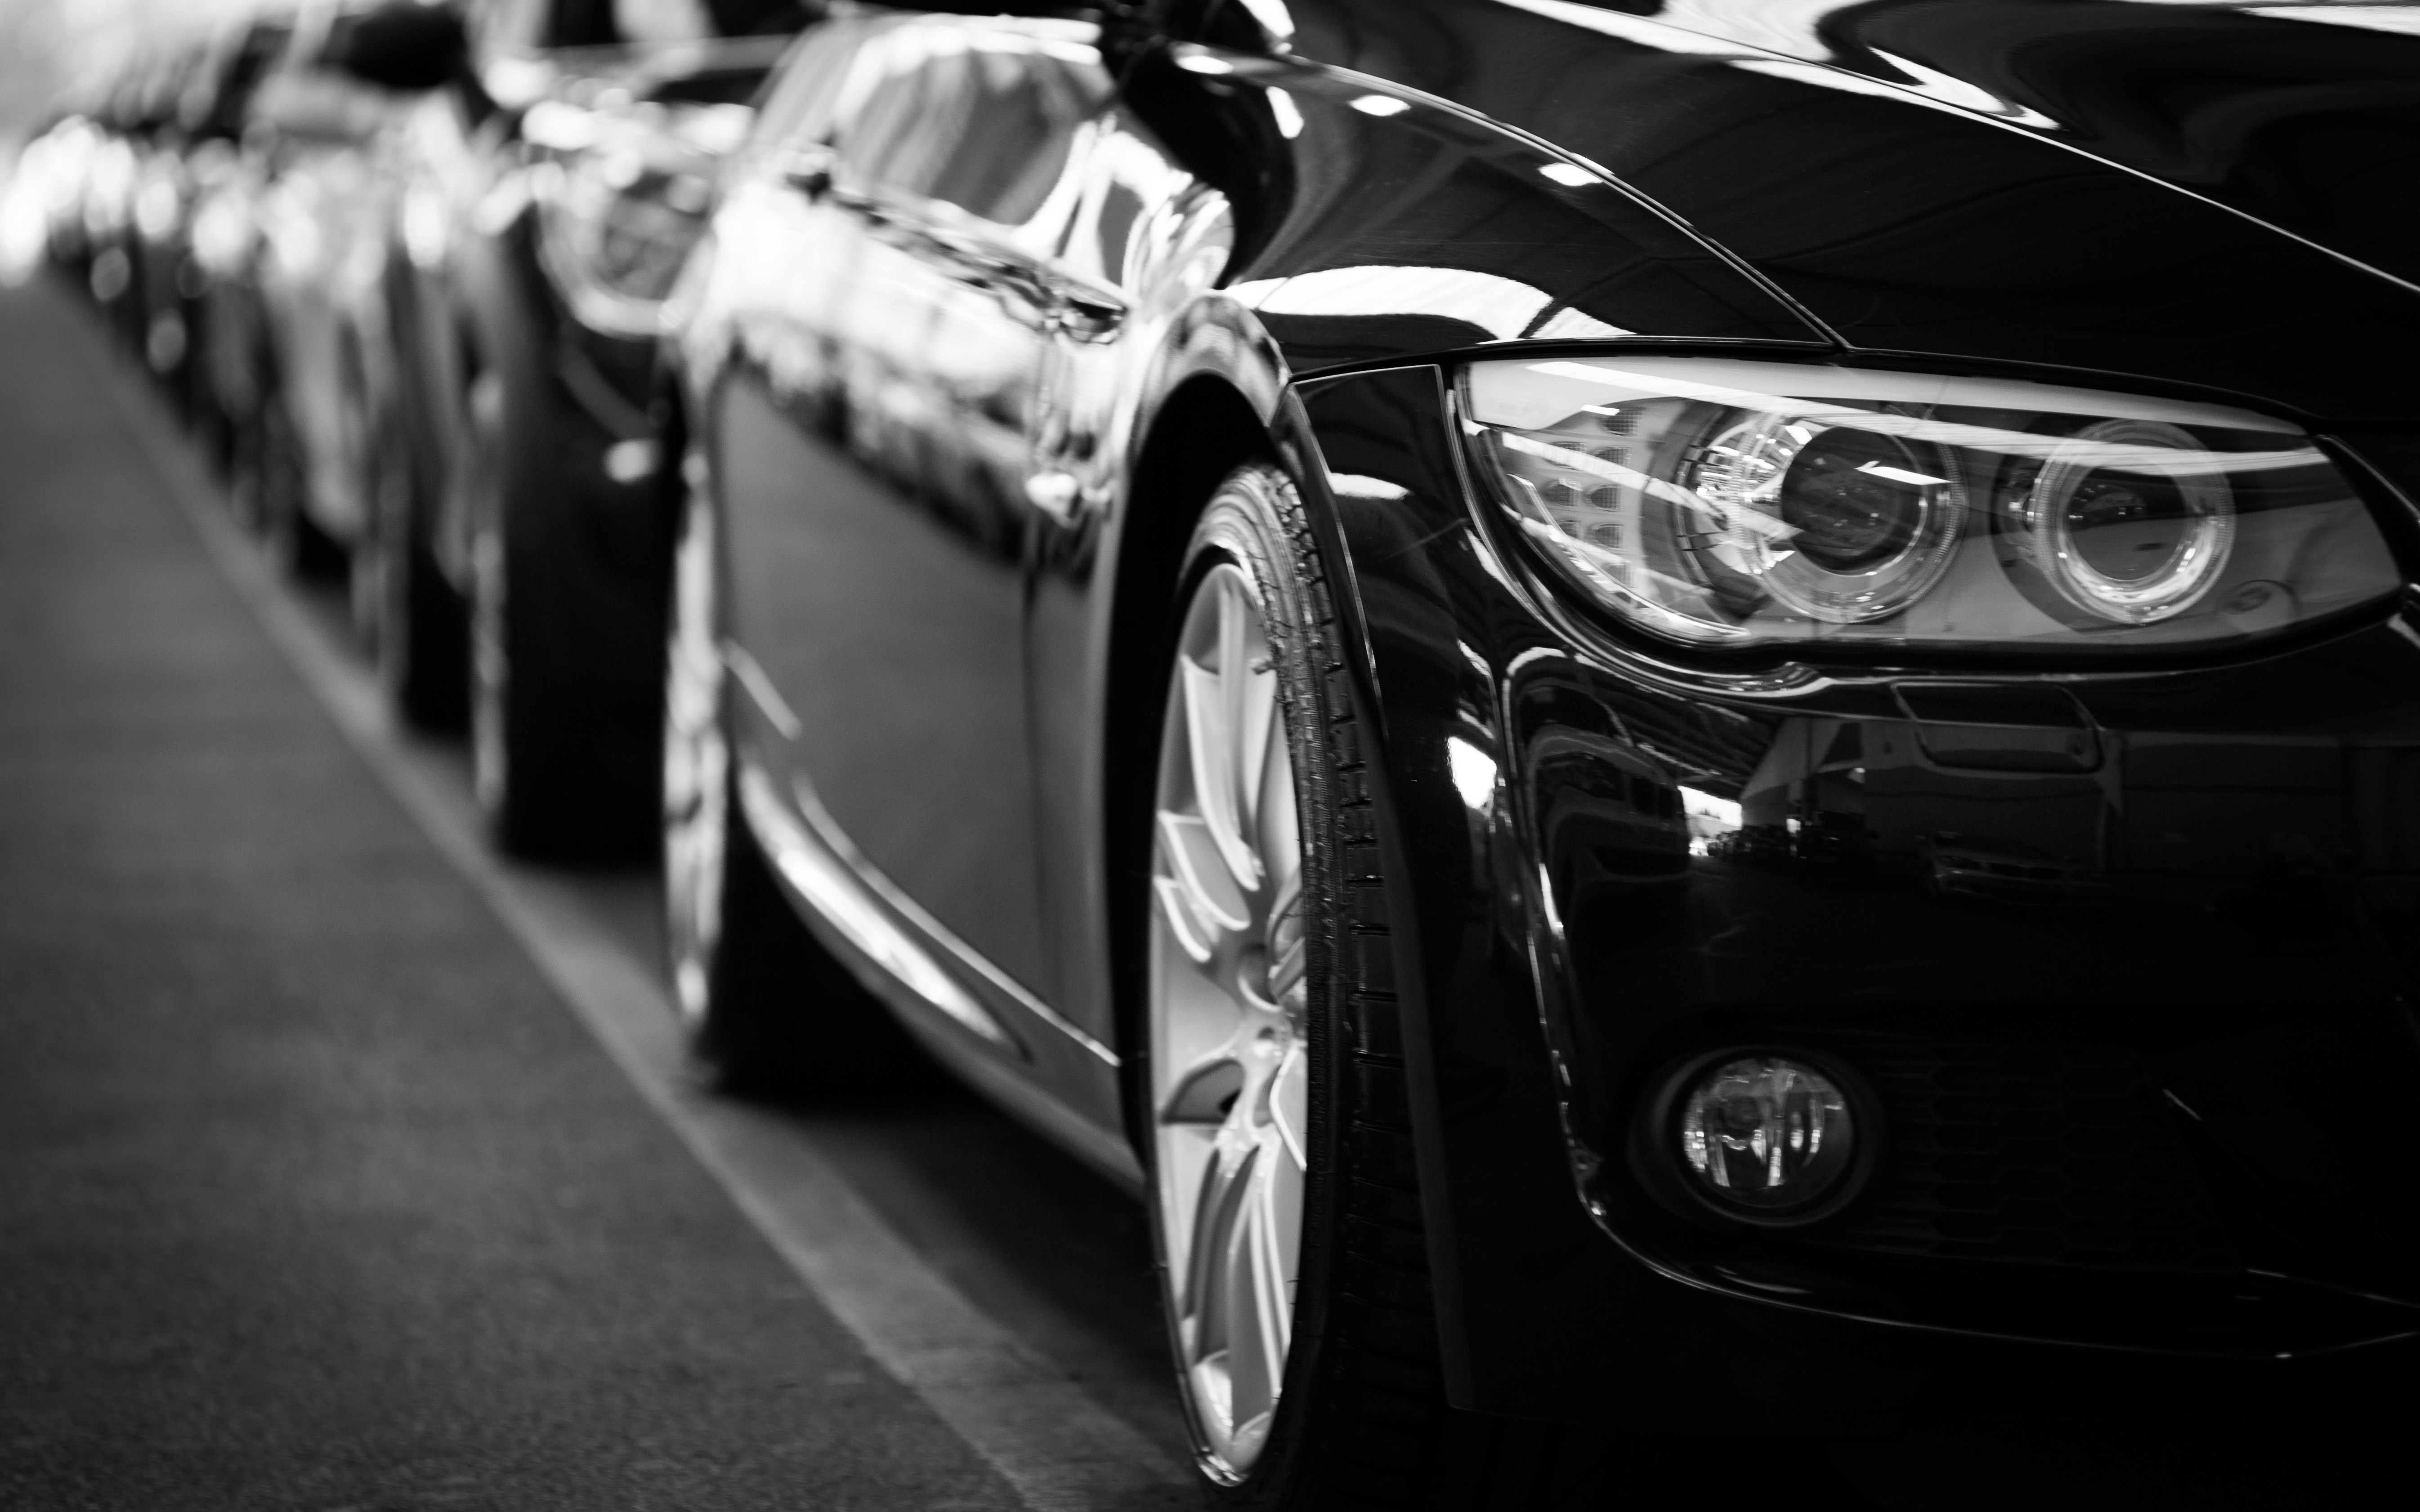 black-cars-lined-up